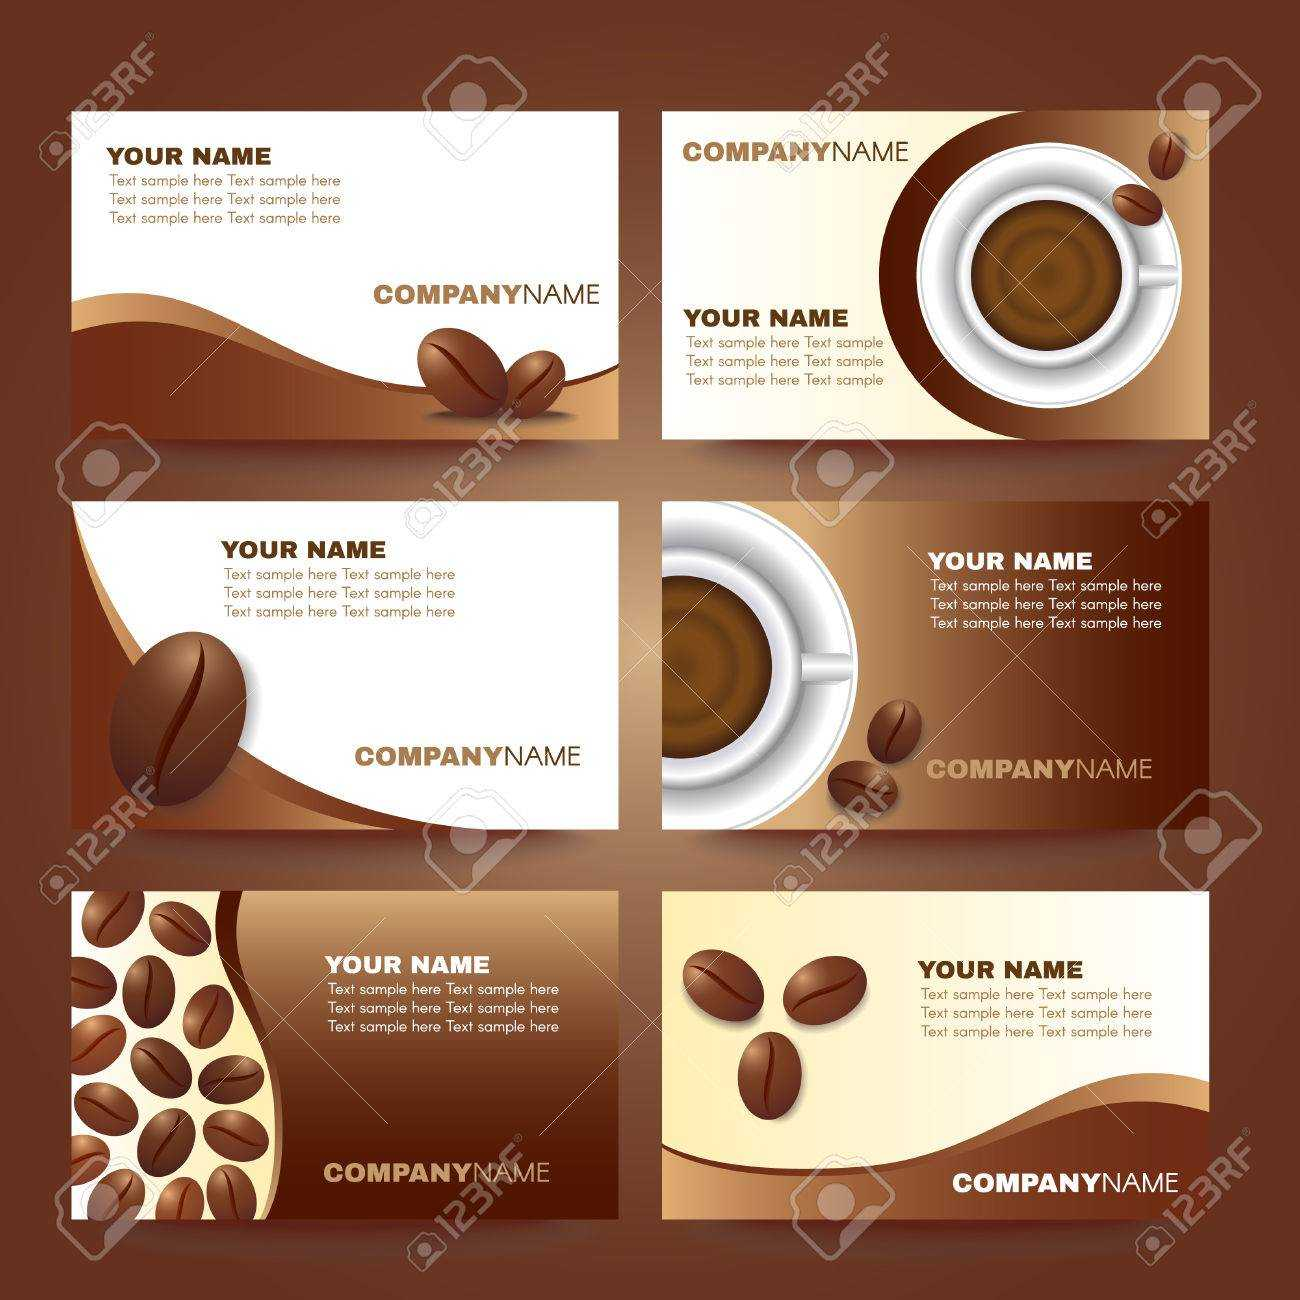 Cafe Business Card Template - Dalep.midnightpig.co Throughout Coffee Business Card Template Free